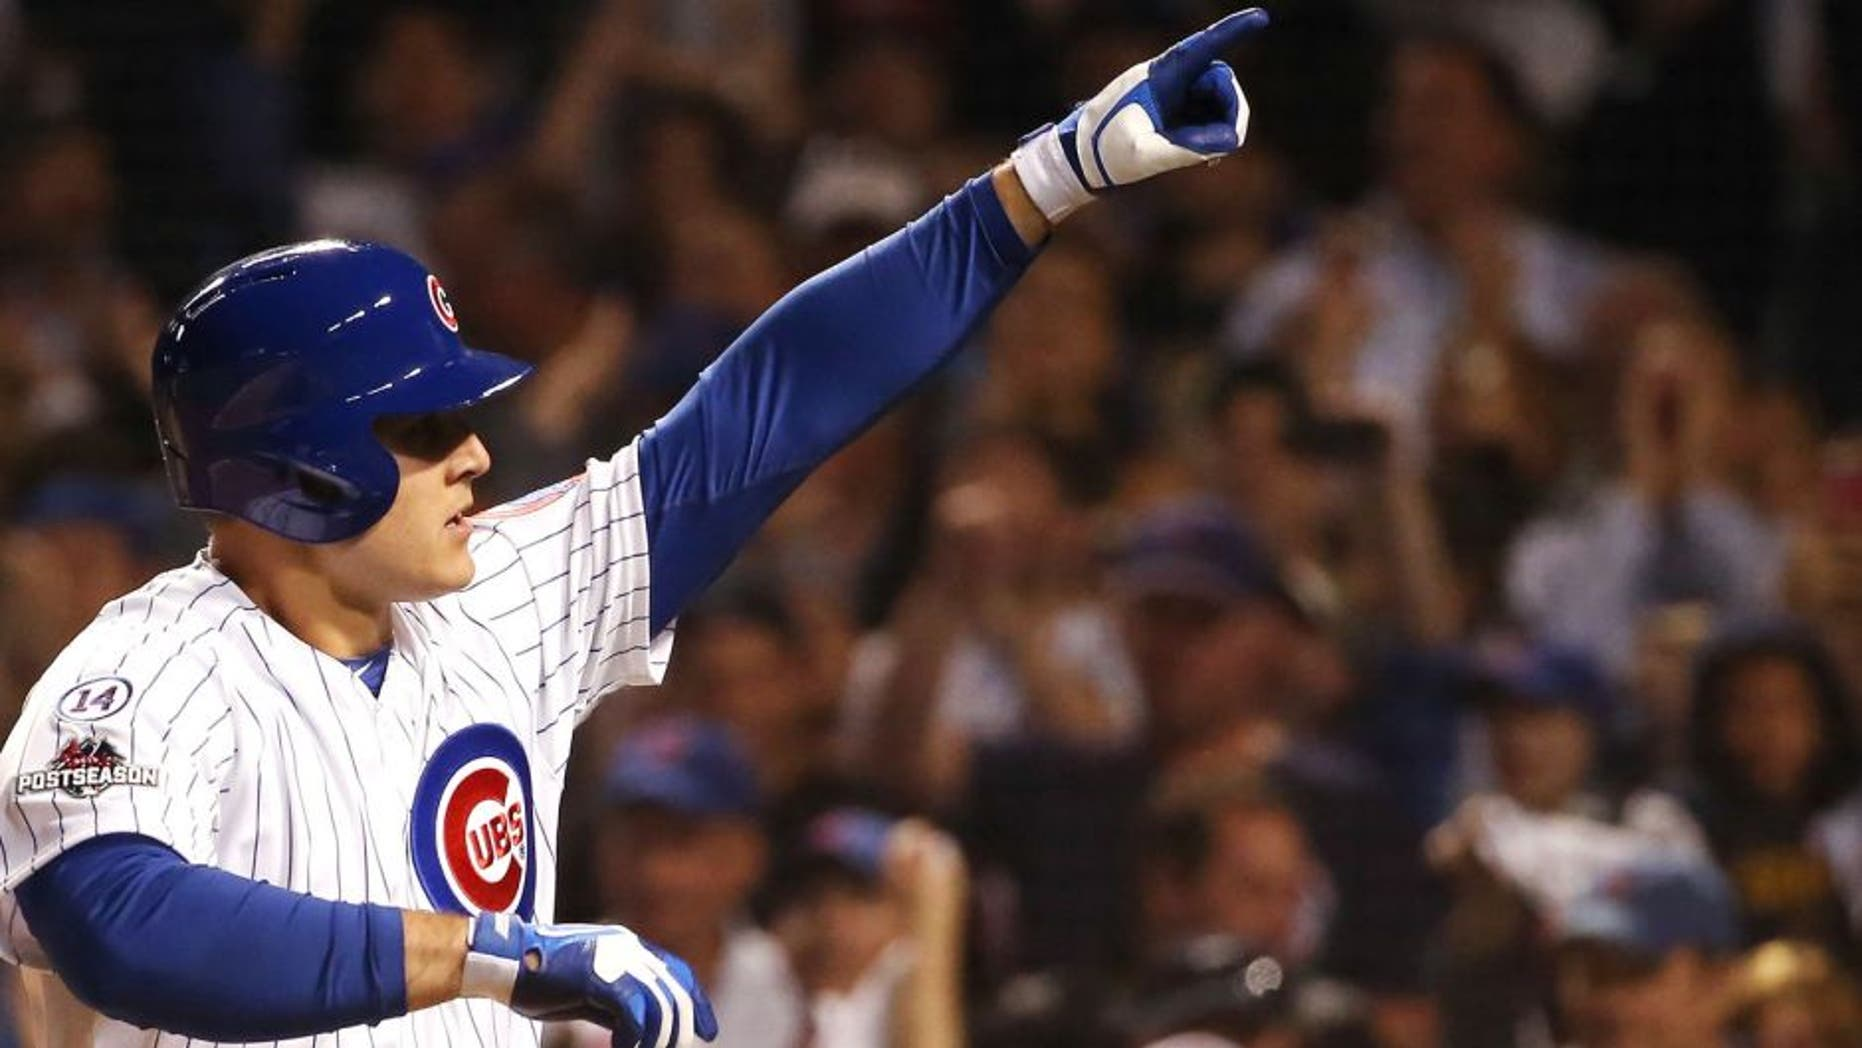 CHICAGO, IL - OCTOBER 12: Anthony Rizzo #44 of the Chicago Cubs reacts after hitting a solo home run in the fifth inning against the St. Louis Cardinals during game three of the National League Division Series at Wrigley Field on October 12, 2015 in Chicago, Illinois. (Photo by Jonathan Daniel/Getty Images)